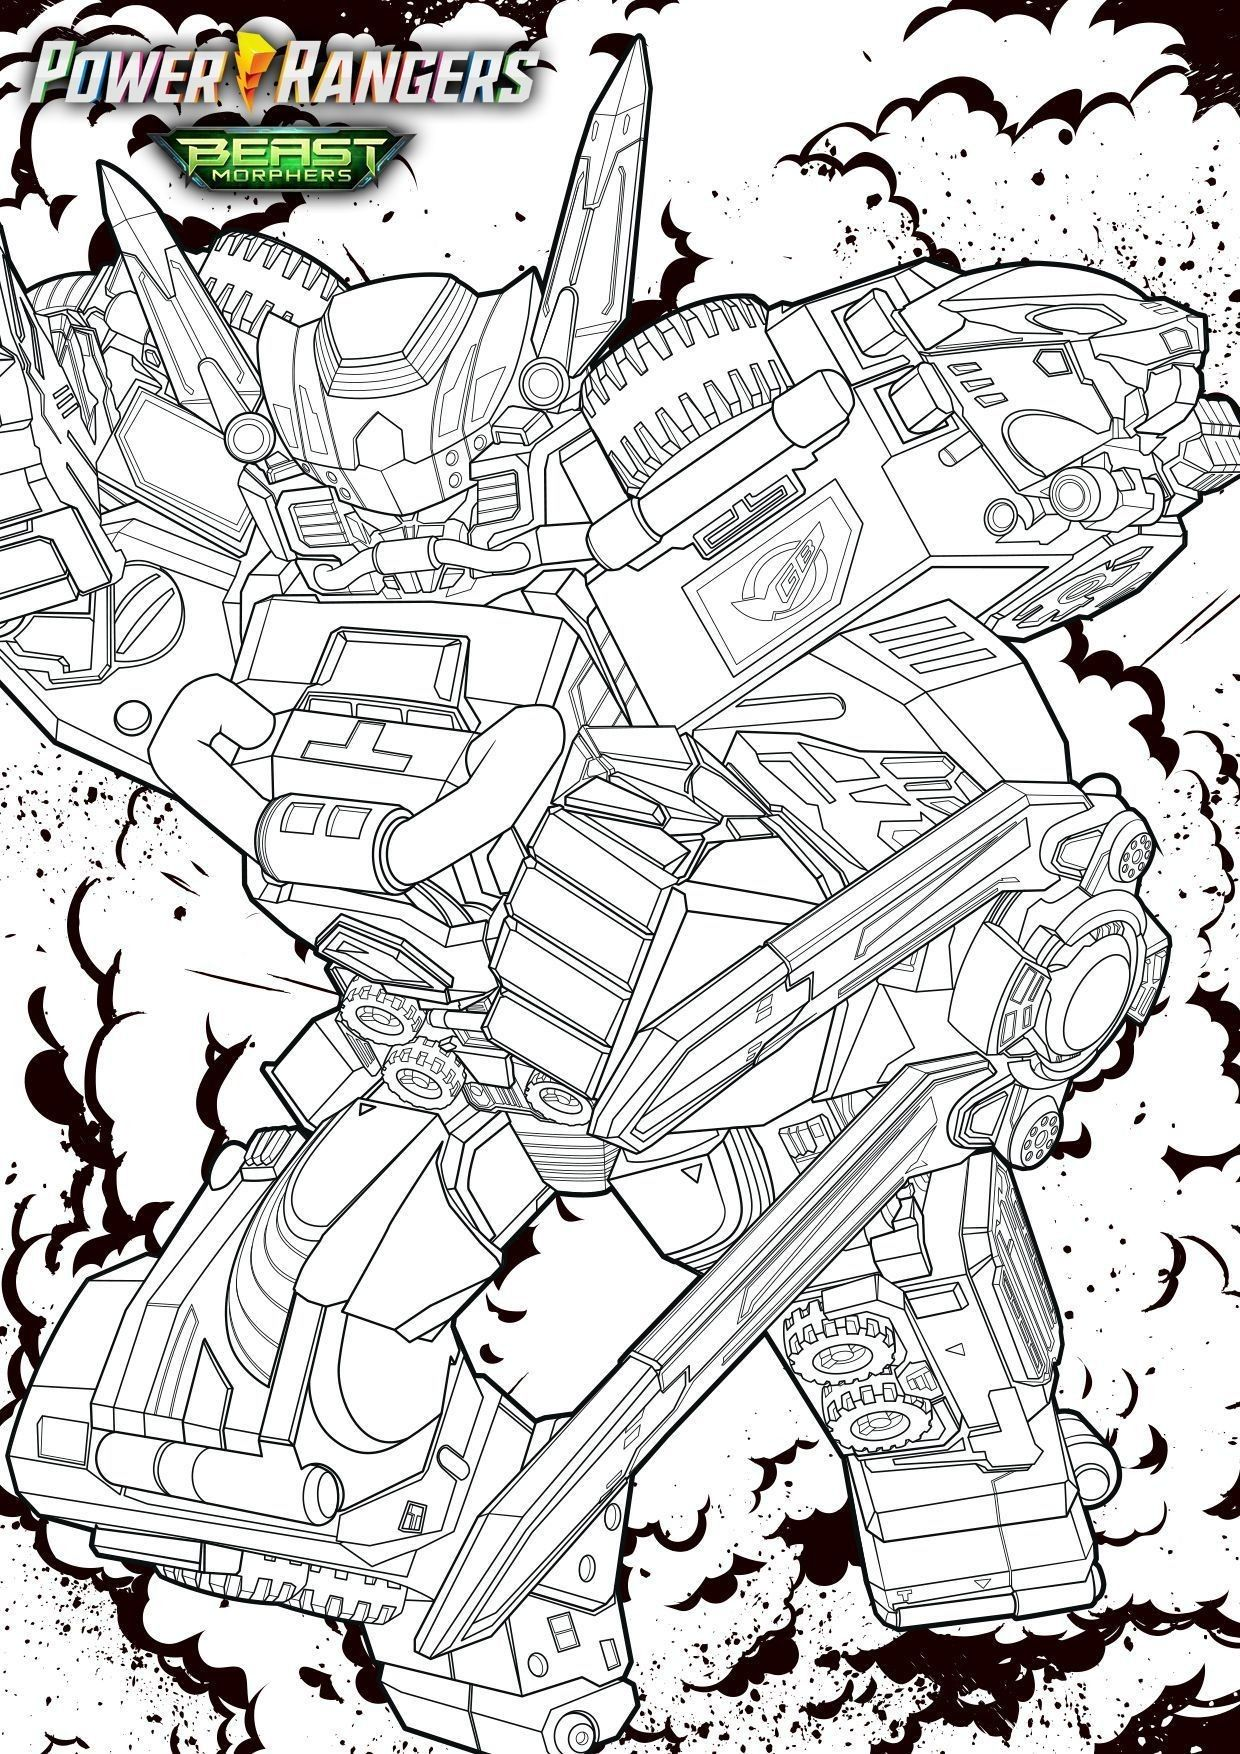 Coloriages Power Rangers Beast Morphers A Imprimer Power Rangers Beast Morphers Coloriage Power Rangers Power Rangers Coloriage